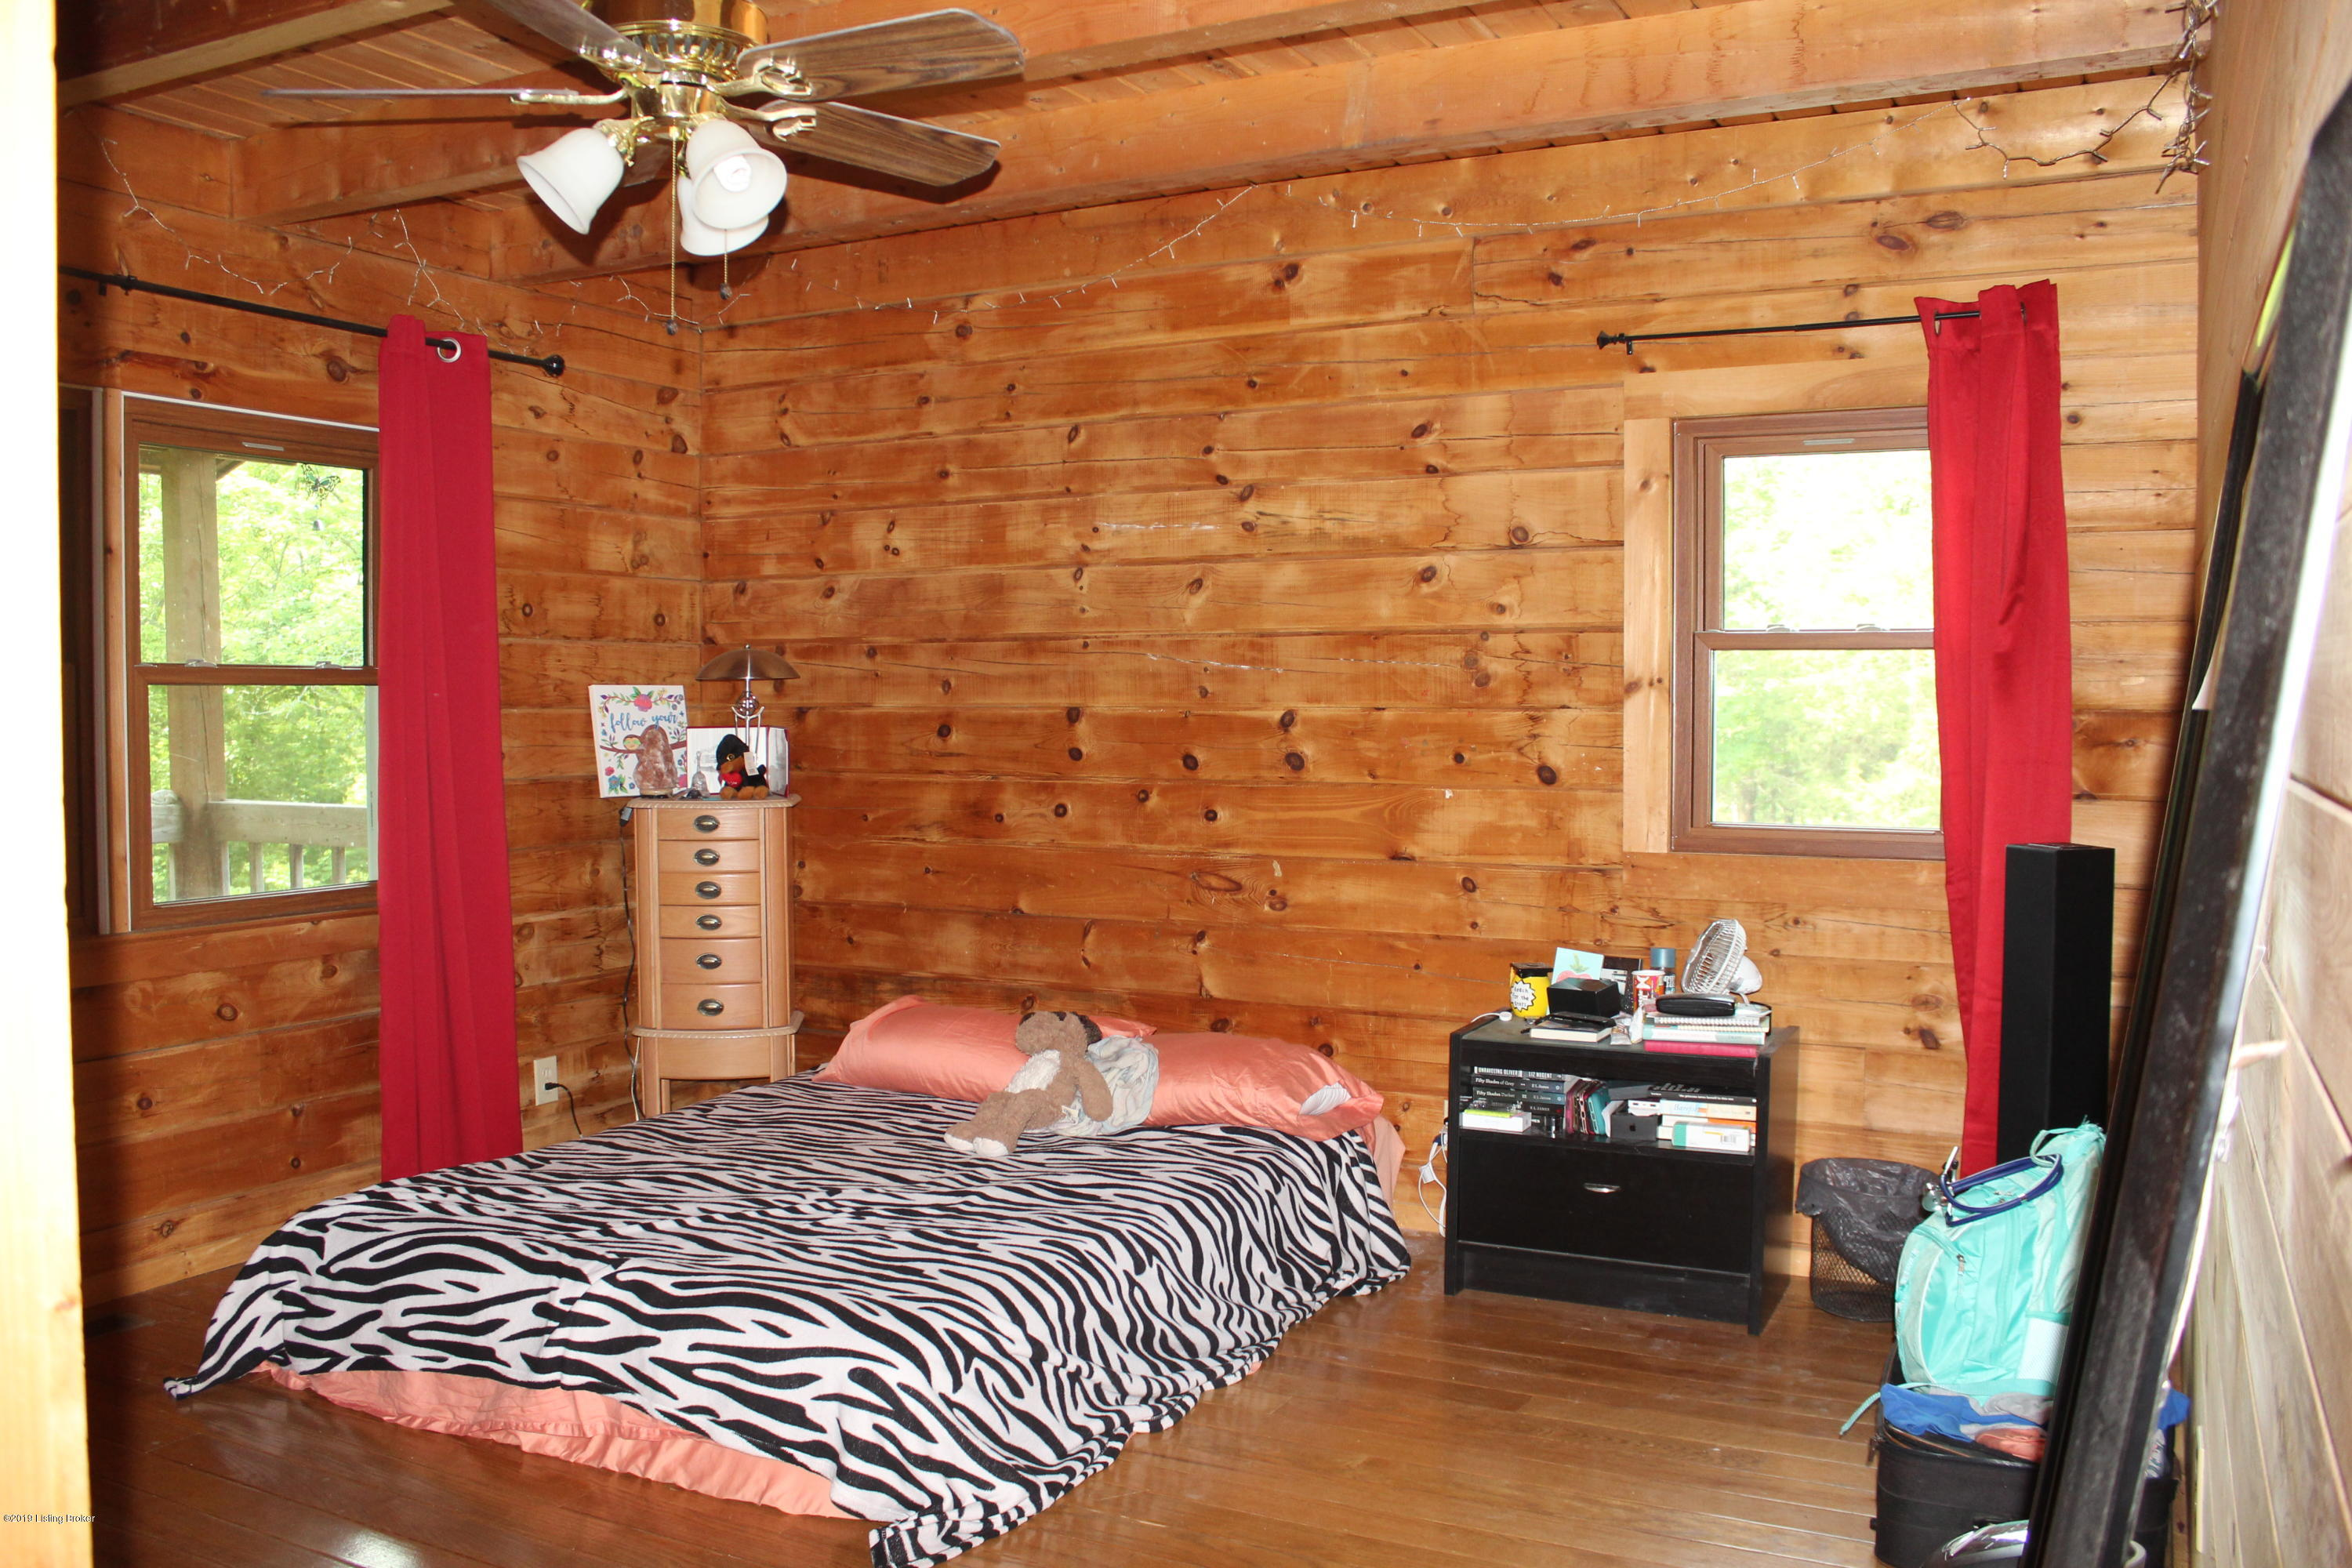 206 Hickory Ln, Bloomfield, Kentucky 40008, 3 Bedrooms Bedrooms, 6 Rooms Rooms,2 BathroomsBathrooms,Residential,For Sale,Hickory,1531326